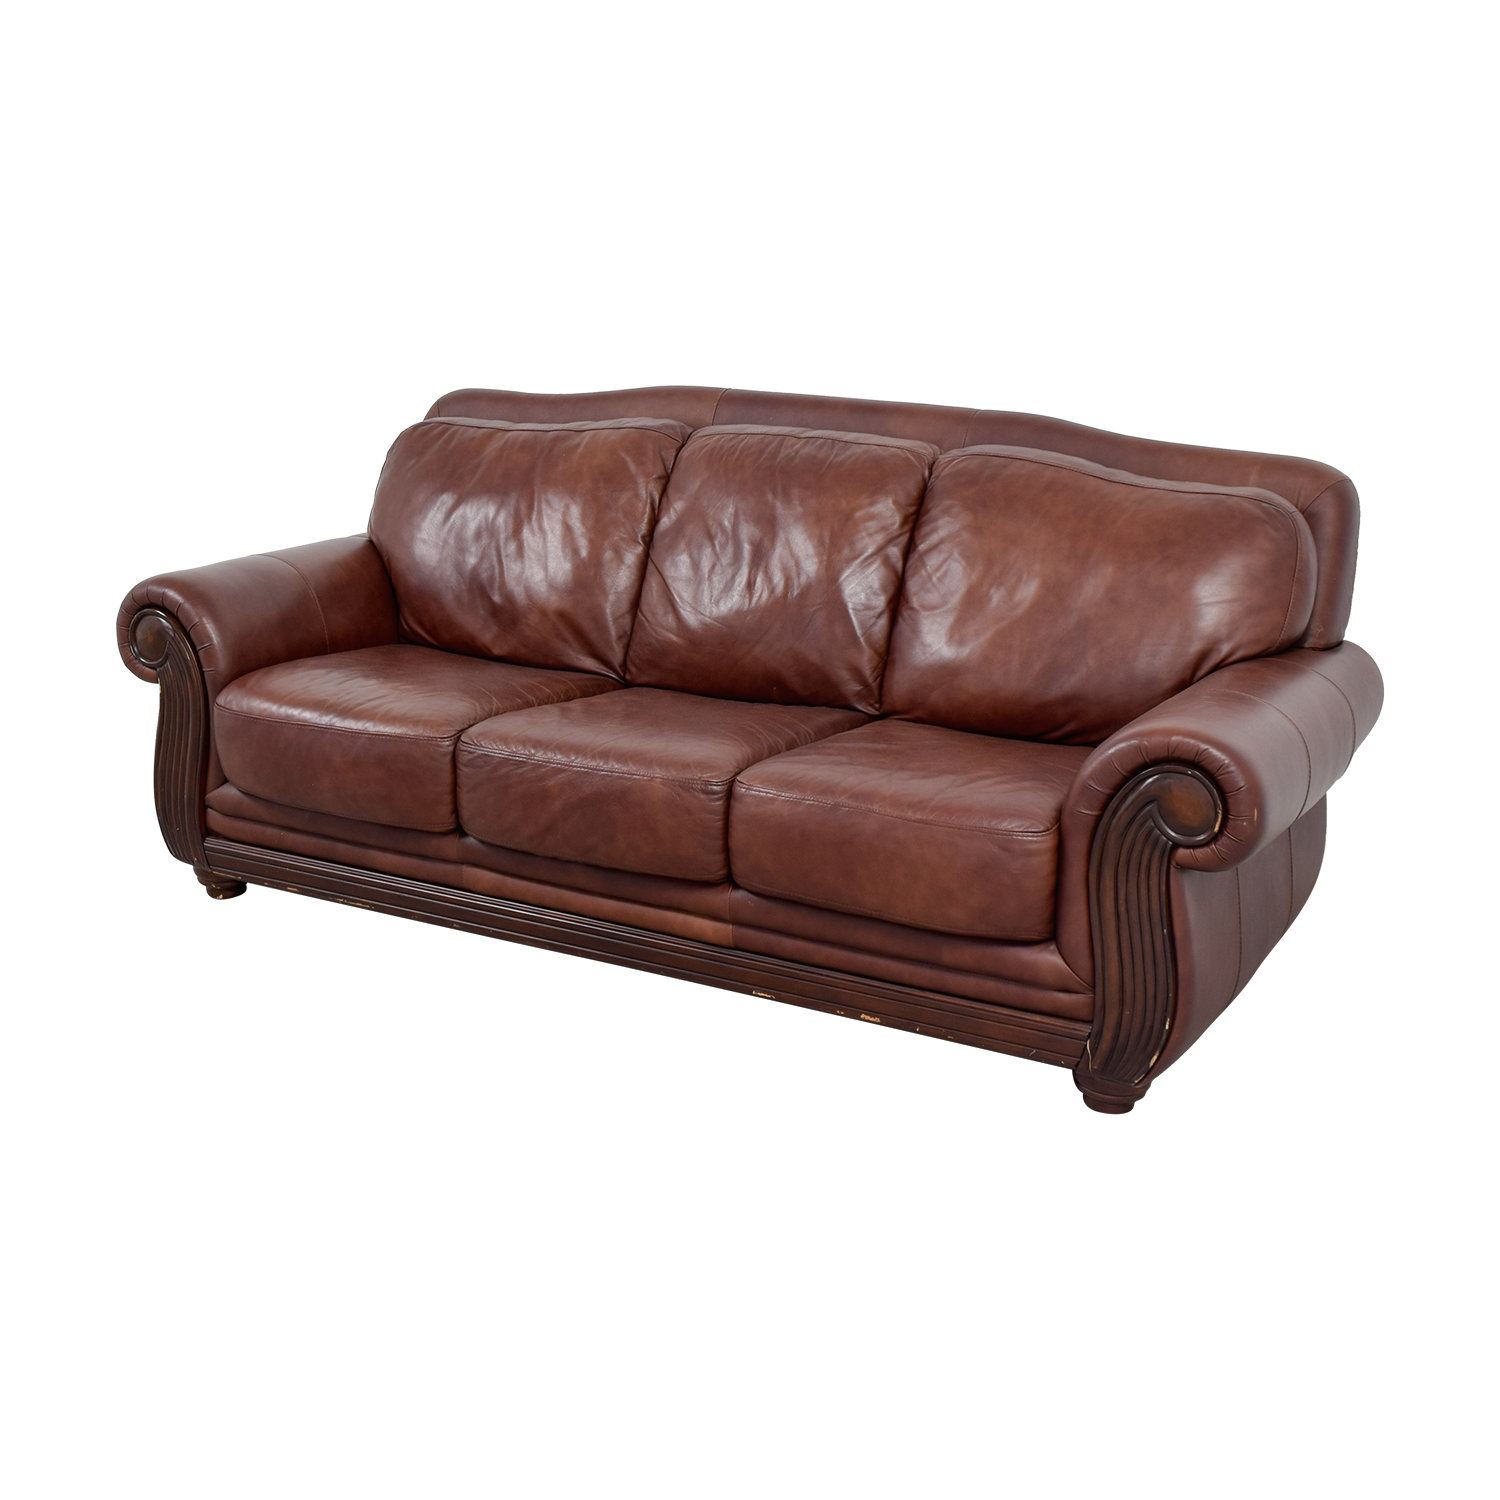 Incredible 69 Off Rooms To Go Rooms To Go Brown Three Cushion Leather Couch Sofas Pabps2019 Chair Design Images Pabps2019Com